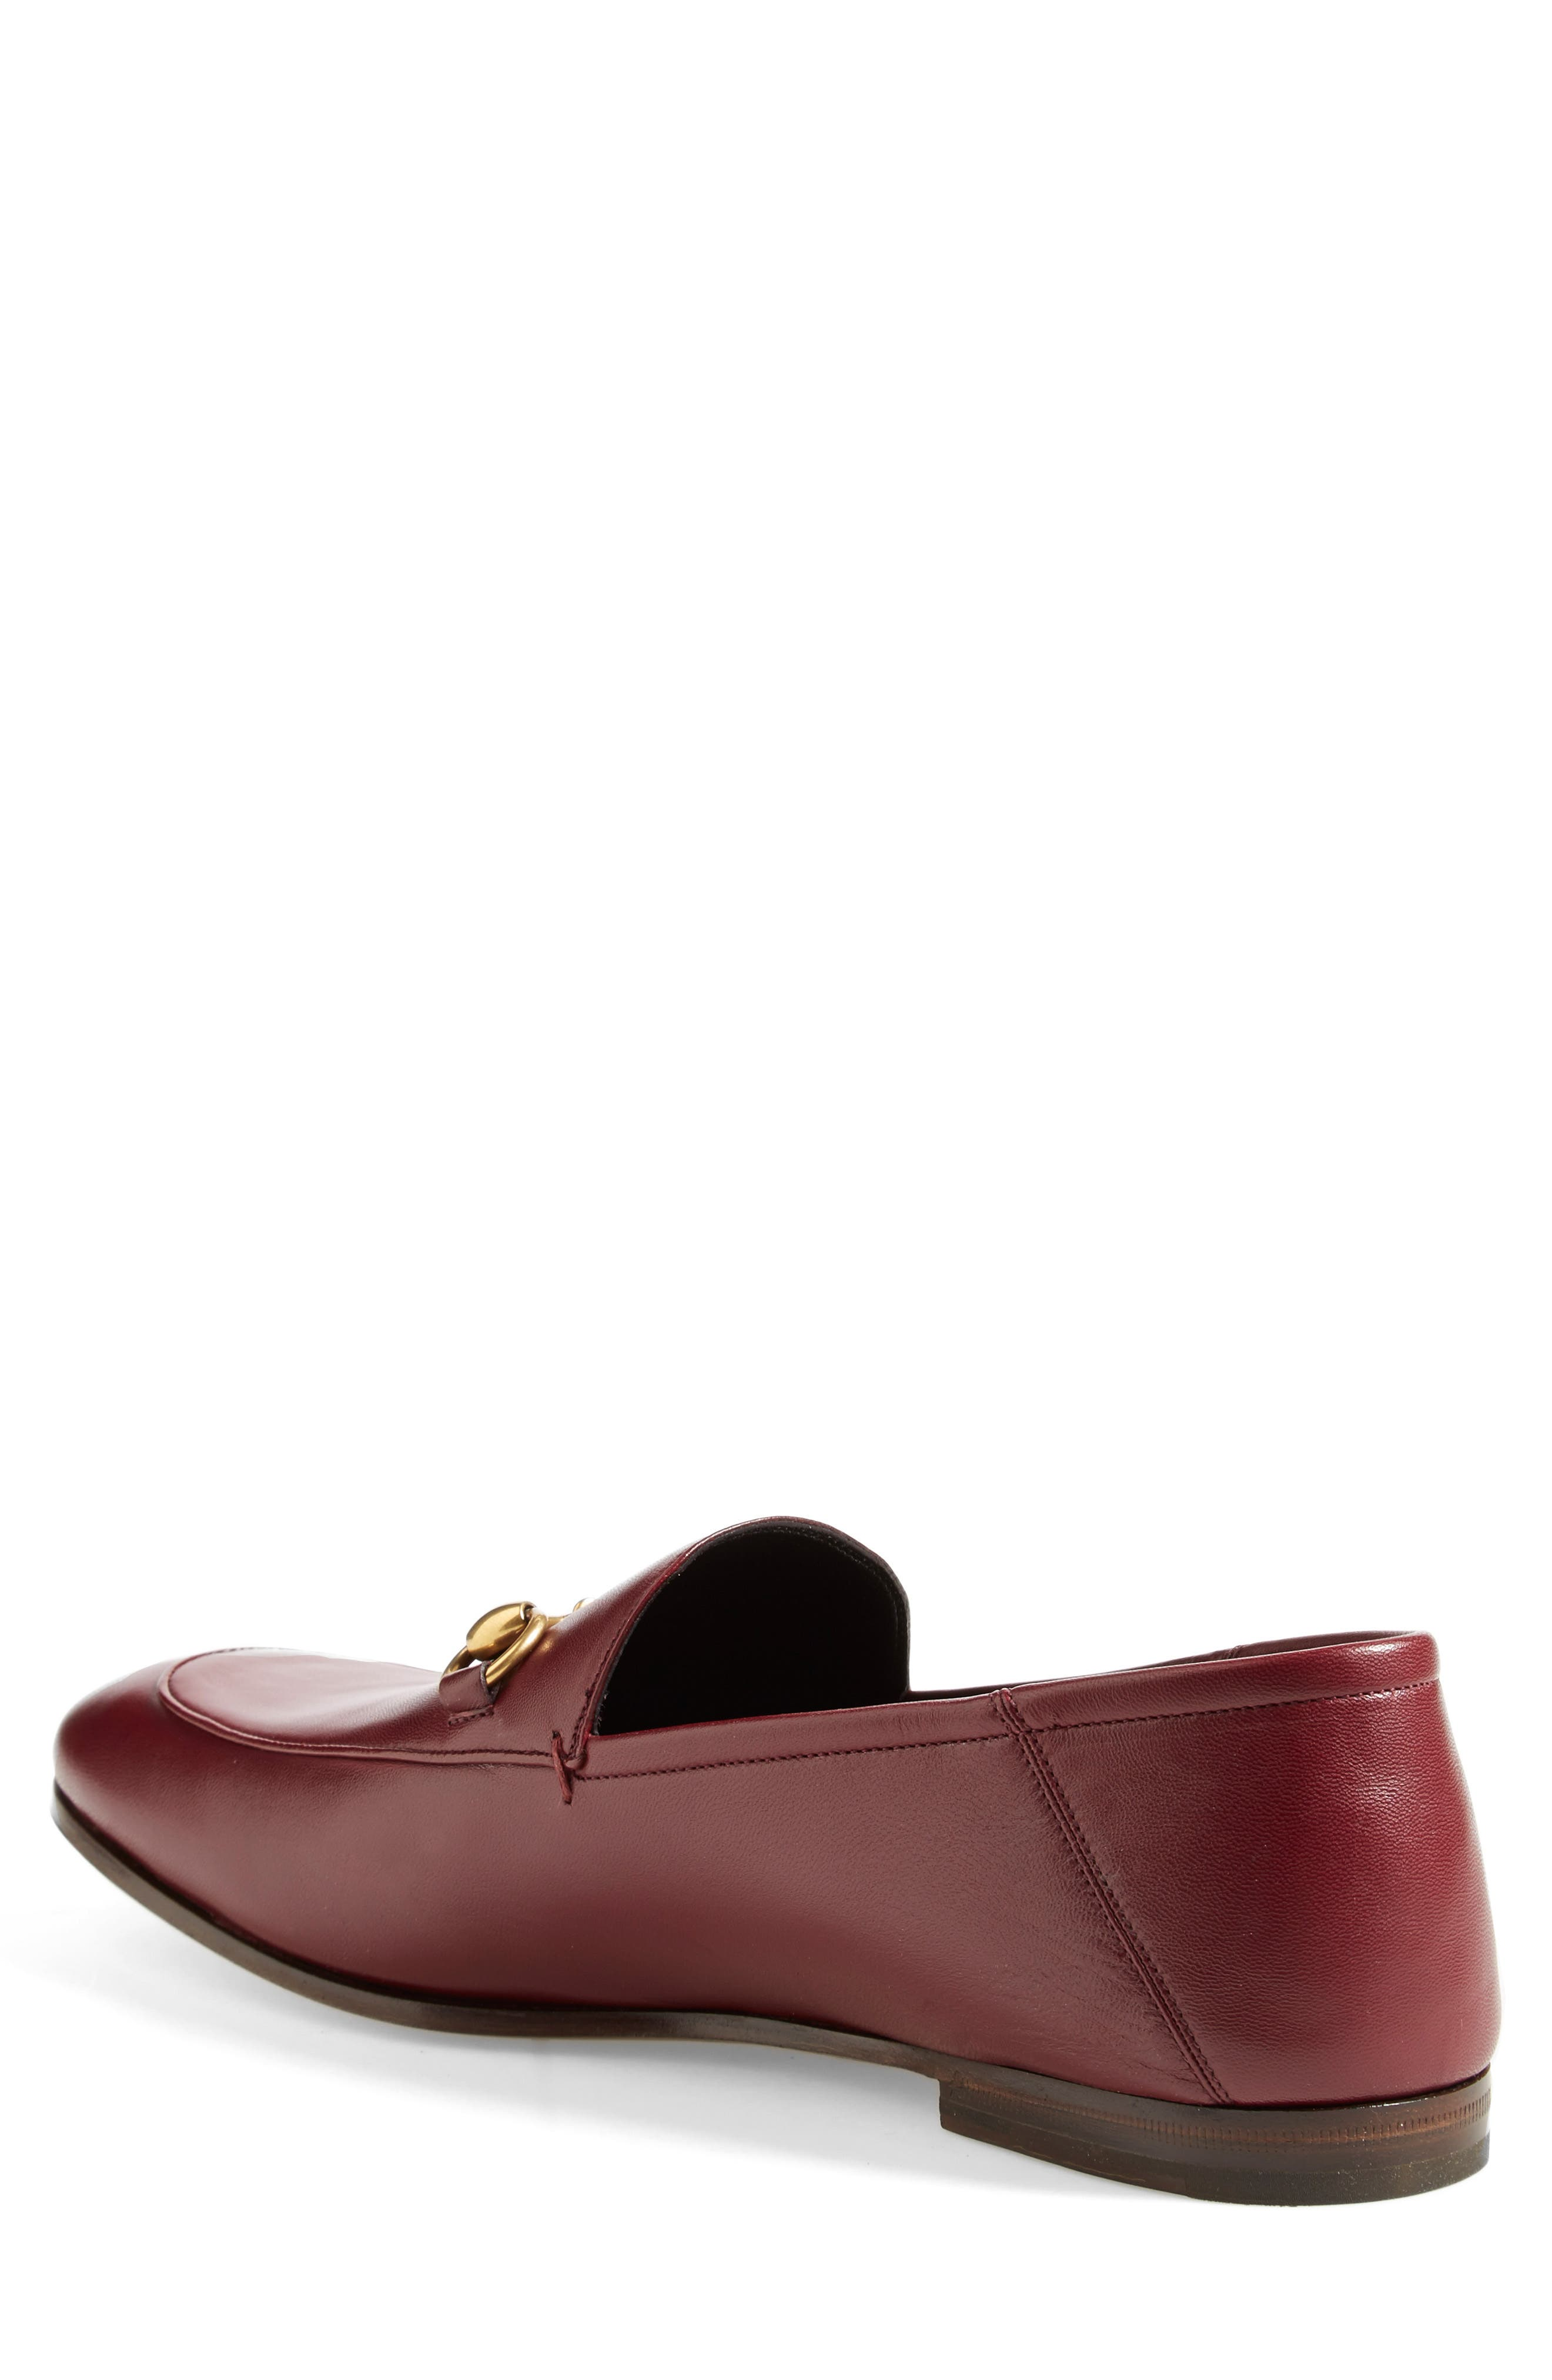 Brixton Leather Loafer,                             Main thumbnail 2, color,